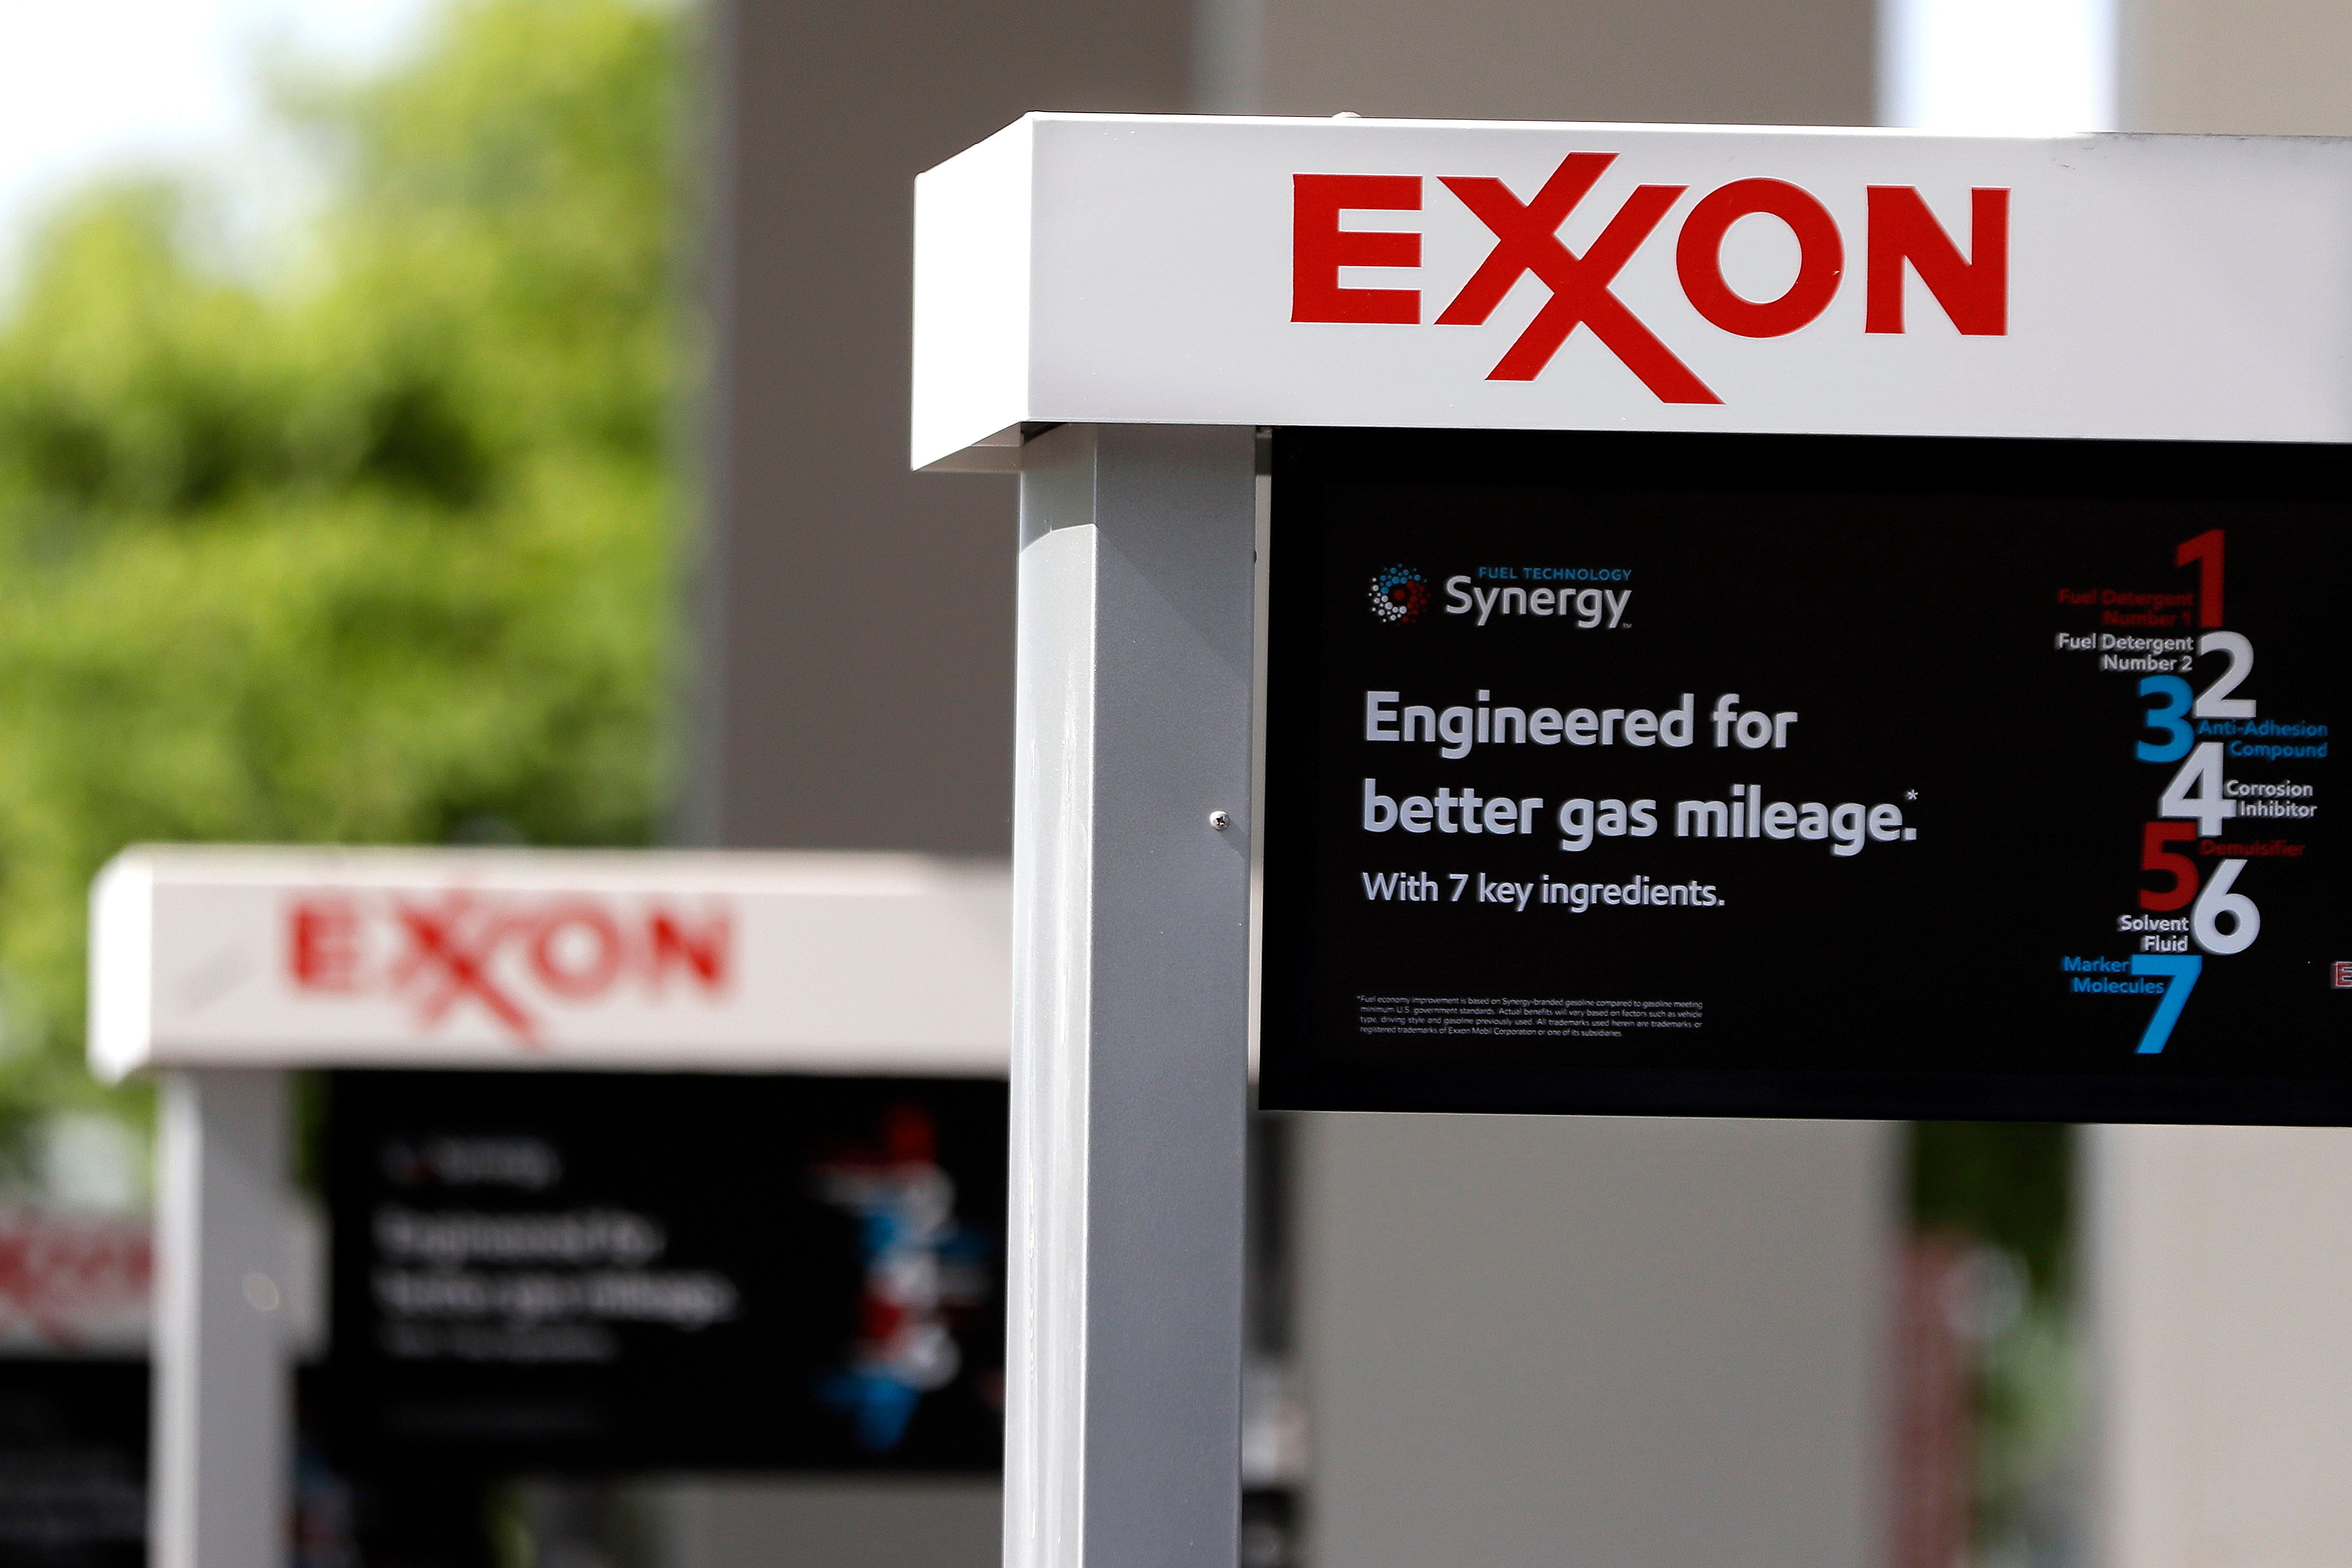 This April 25, 2017, photo, shows Exxon service station signs in Nashville, Tenn. The gasoline company is being sued by the state of New York for misleading investors regarding climate change.